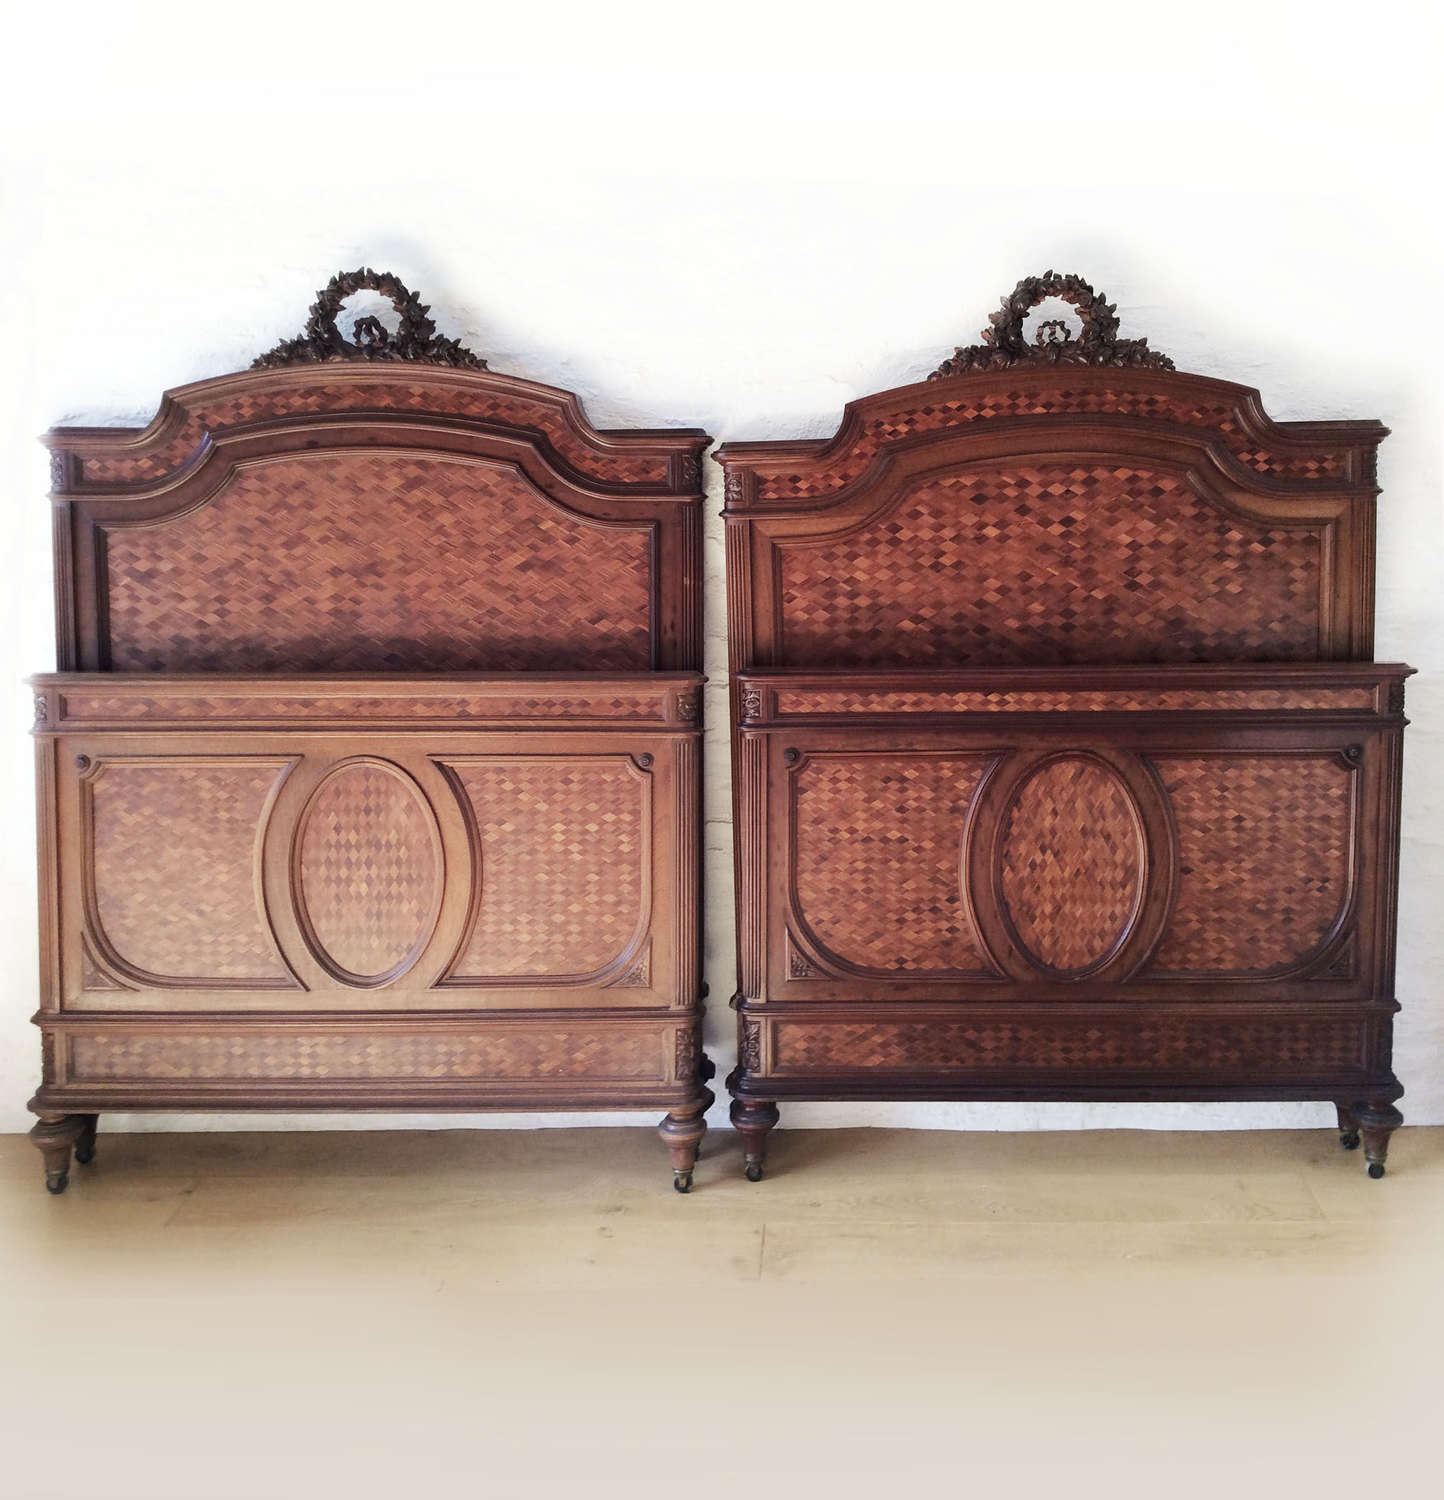 Pair of 19th Century Louis XVI style single Bedsteads